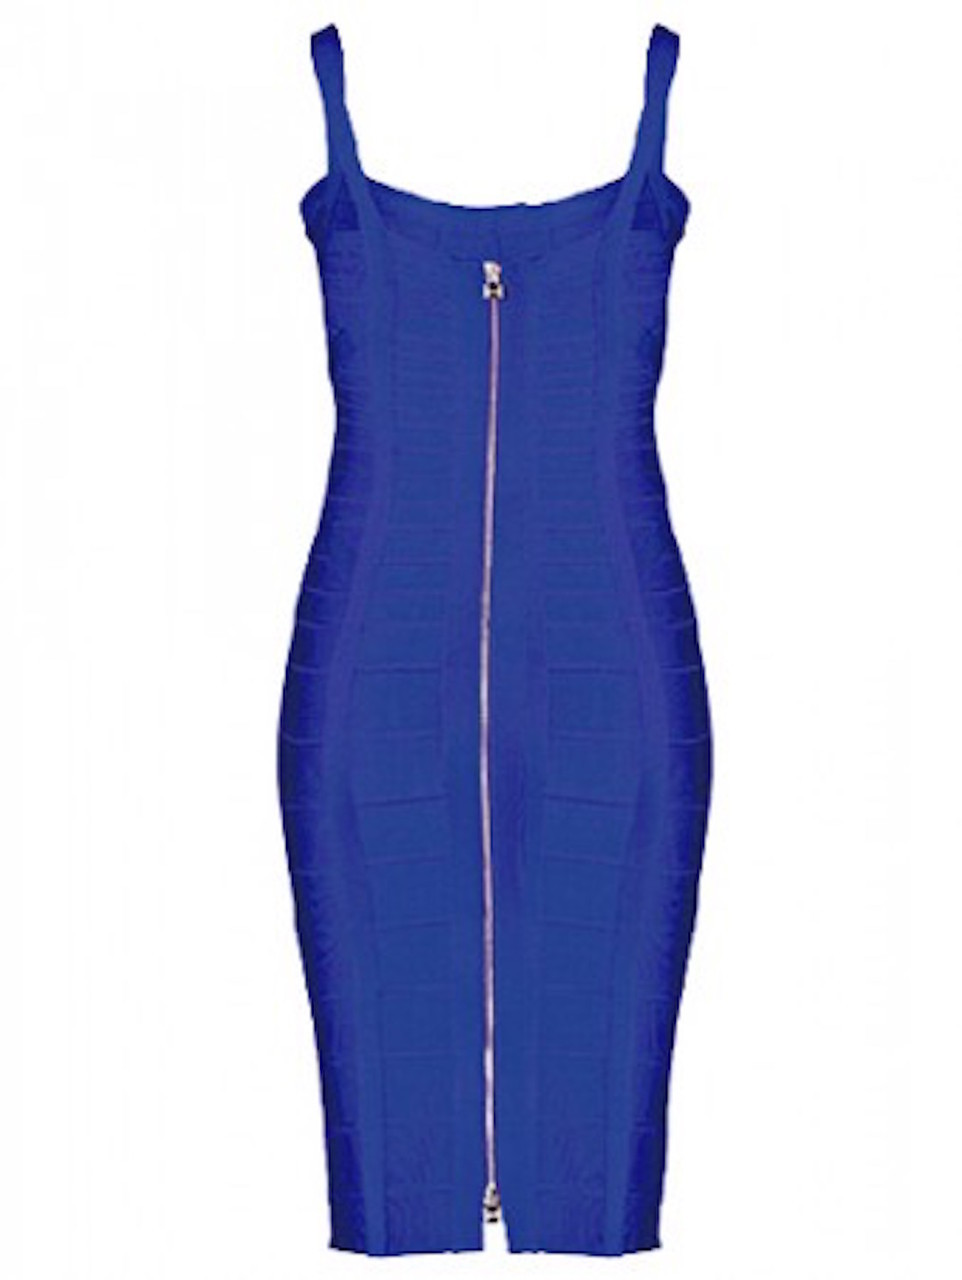 SMALL - Blue Square Neckline Celeb Inspired Mini Bandage Dress - LAST ONE